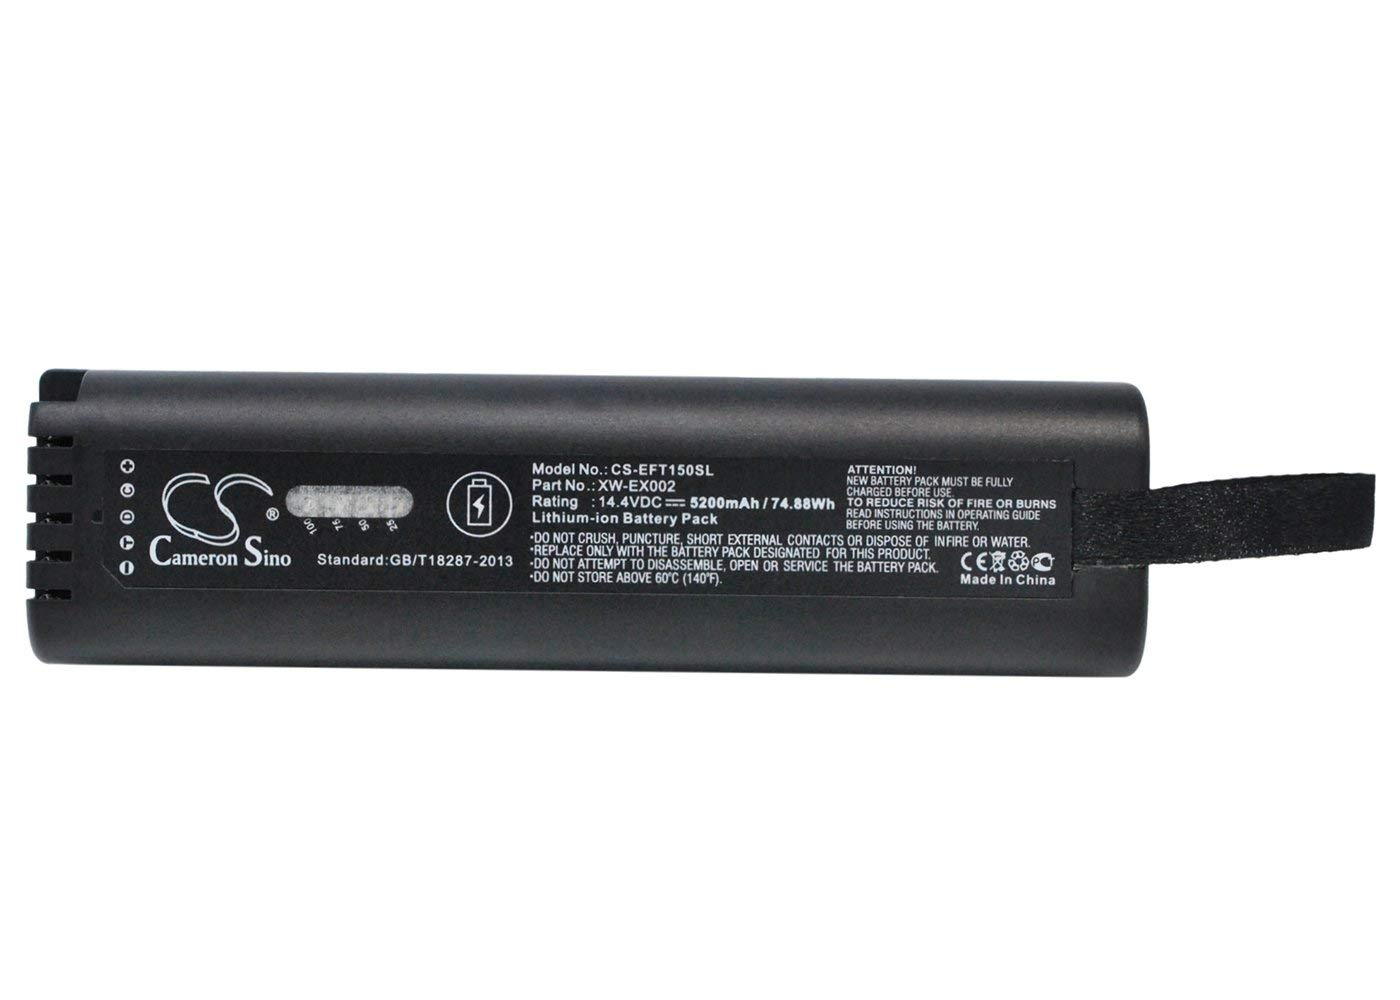 VINTRONS, EXFO L08D185A, L08D185UG, XW-EX002, XW-EX006 Replacement Battery for EXFO FTB-150, FTB-200, by VI VINTRONS